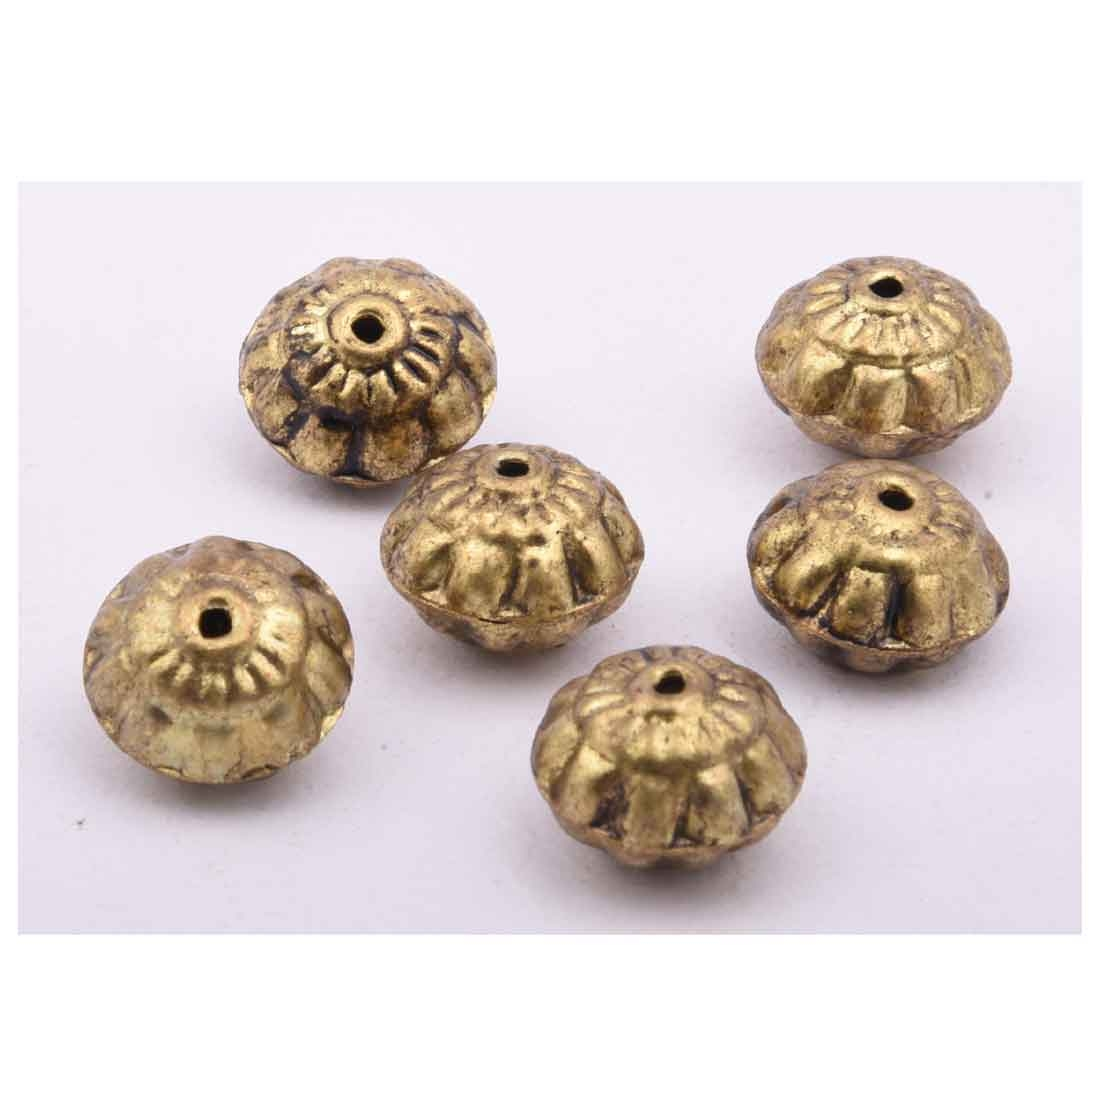 Beads India 1700045  Handcrafted Metal Beads/Discounts Above 500 pcs